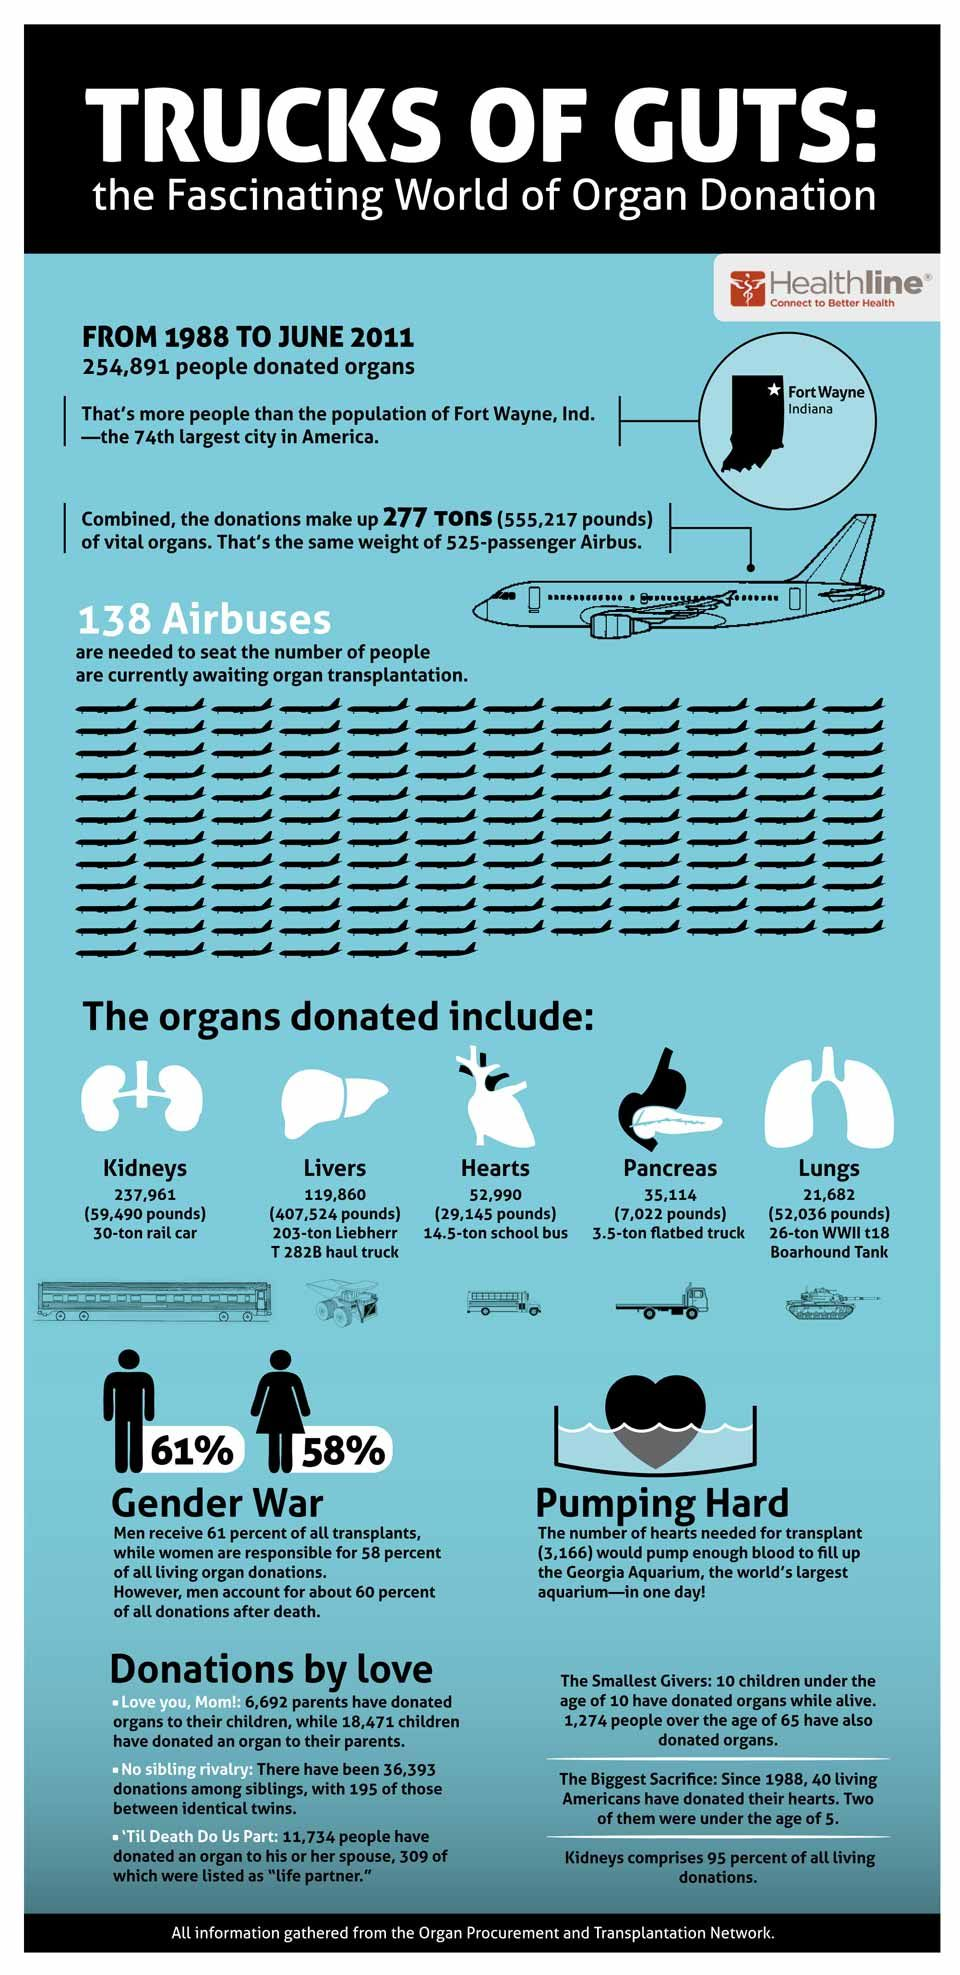 organ donation thesis Download thesis statement on organ donation in our database or order an original thesis paper that will be written by one of our staff writers and delivered according.